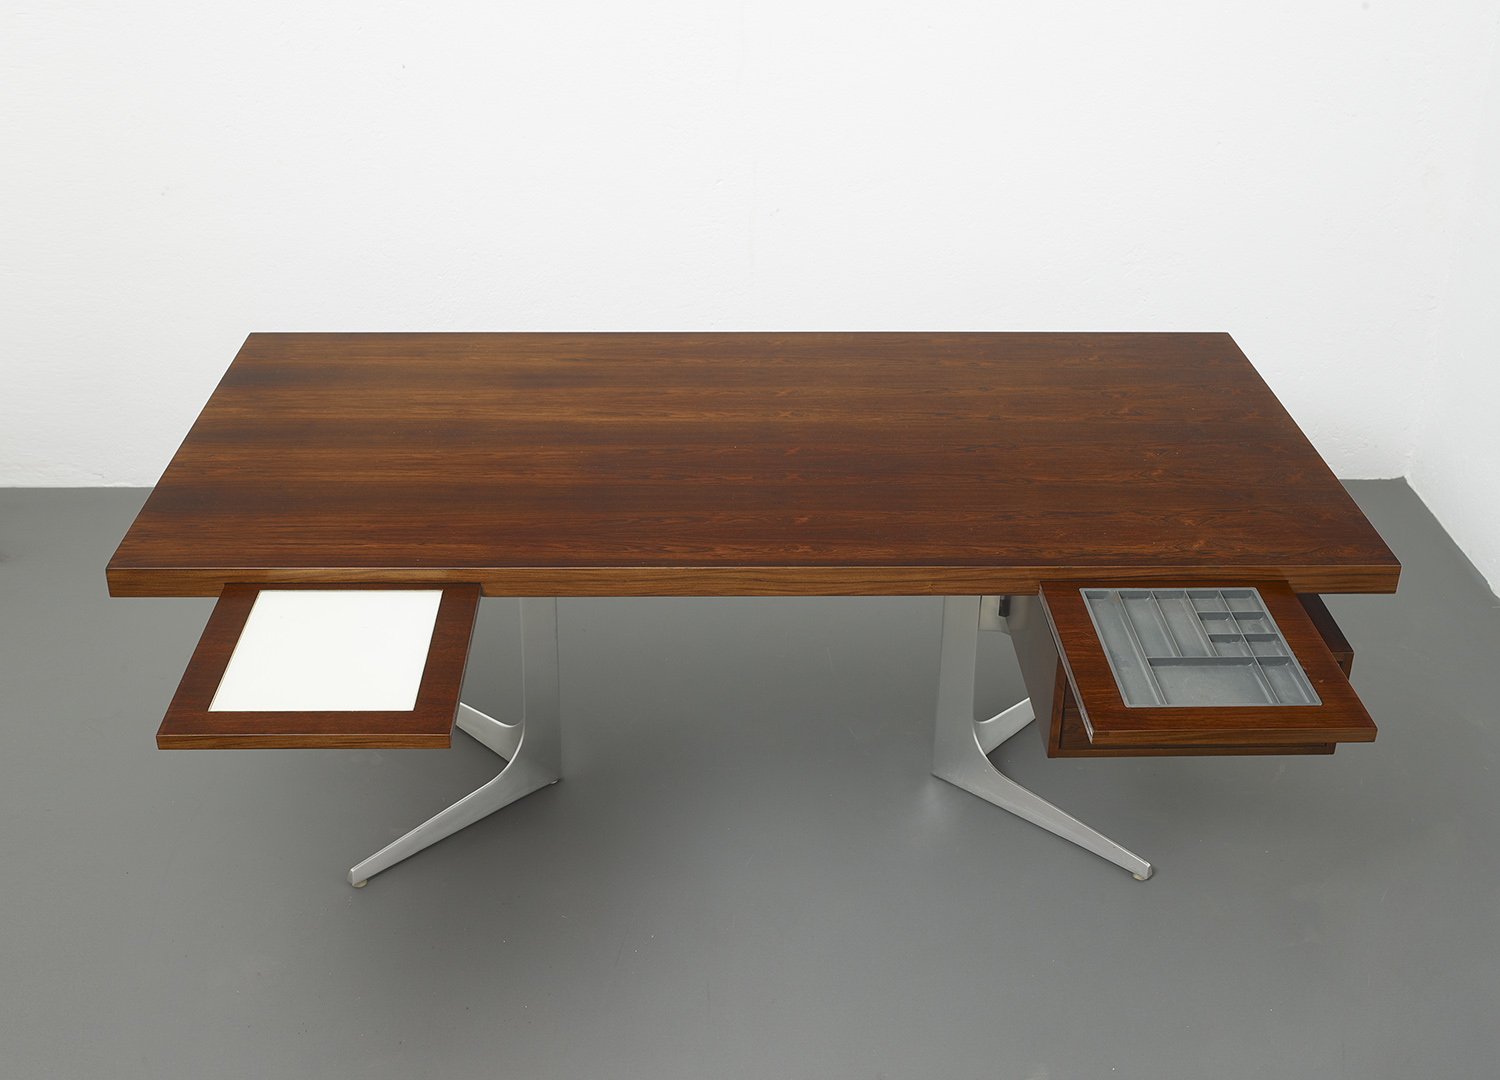 herbert-hirche-executive-rosewood-desk-image-03